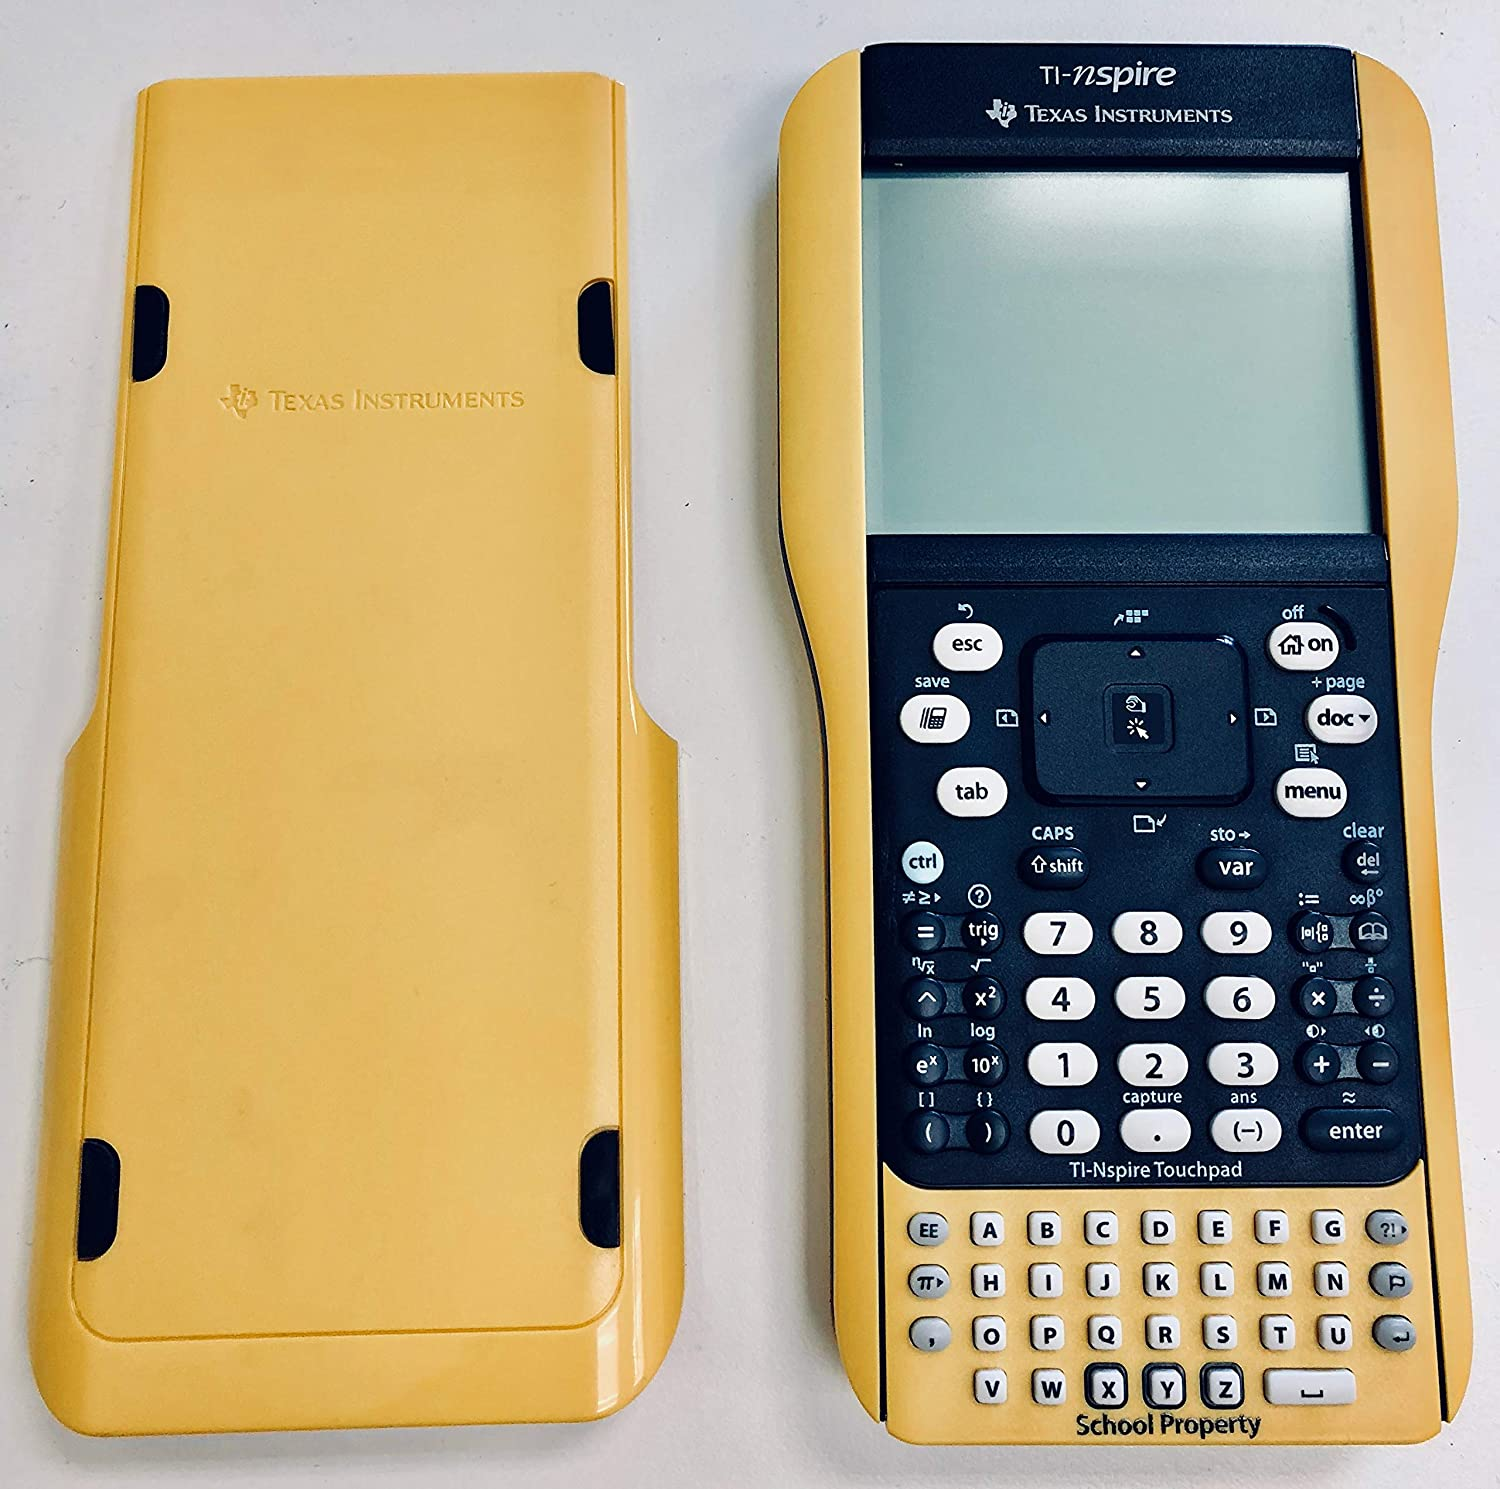 New Slide Cover For Texas Instruments TI Nspire CX Graphing Calculator Dark Blue